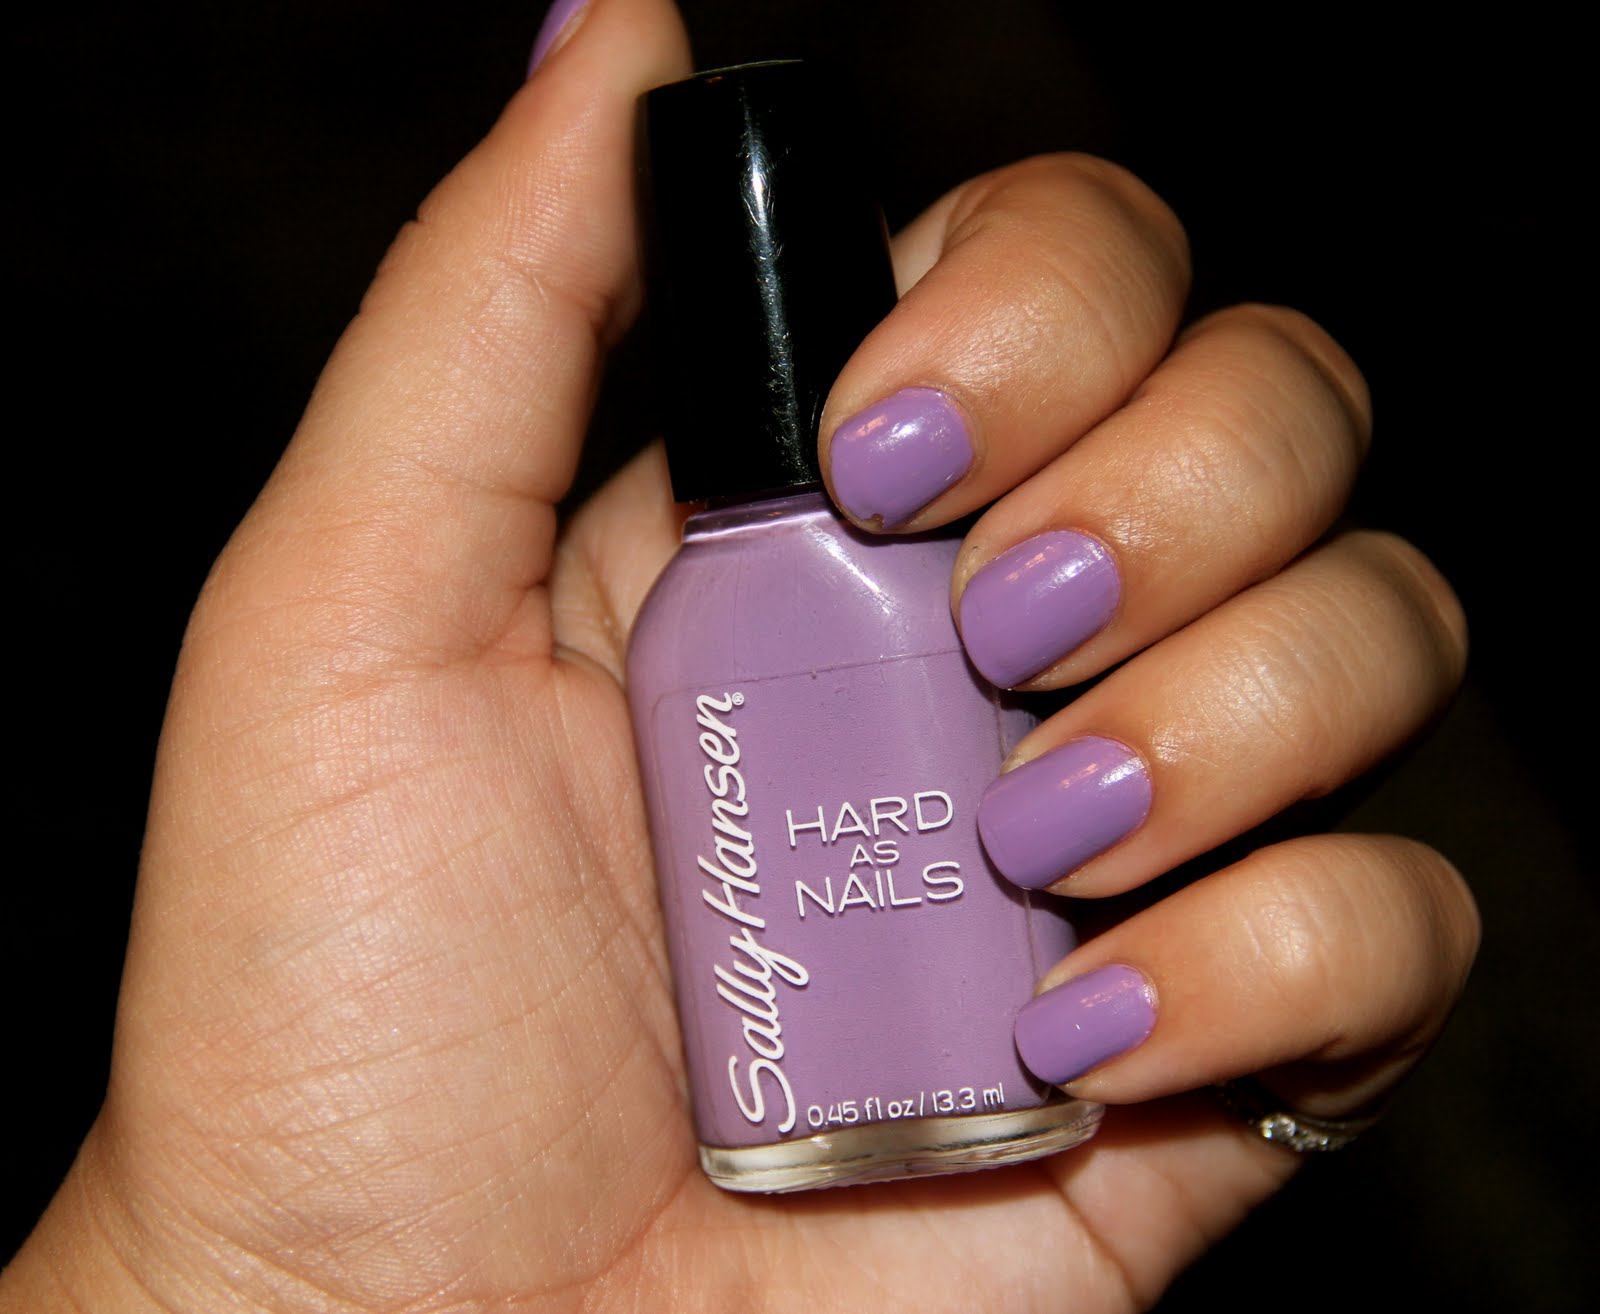 NOTD: Sally Hansen Hard as Nails in 'No Hard Feelings' | Kailan